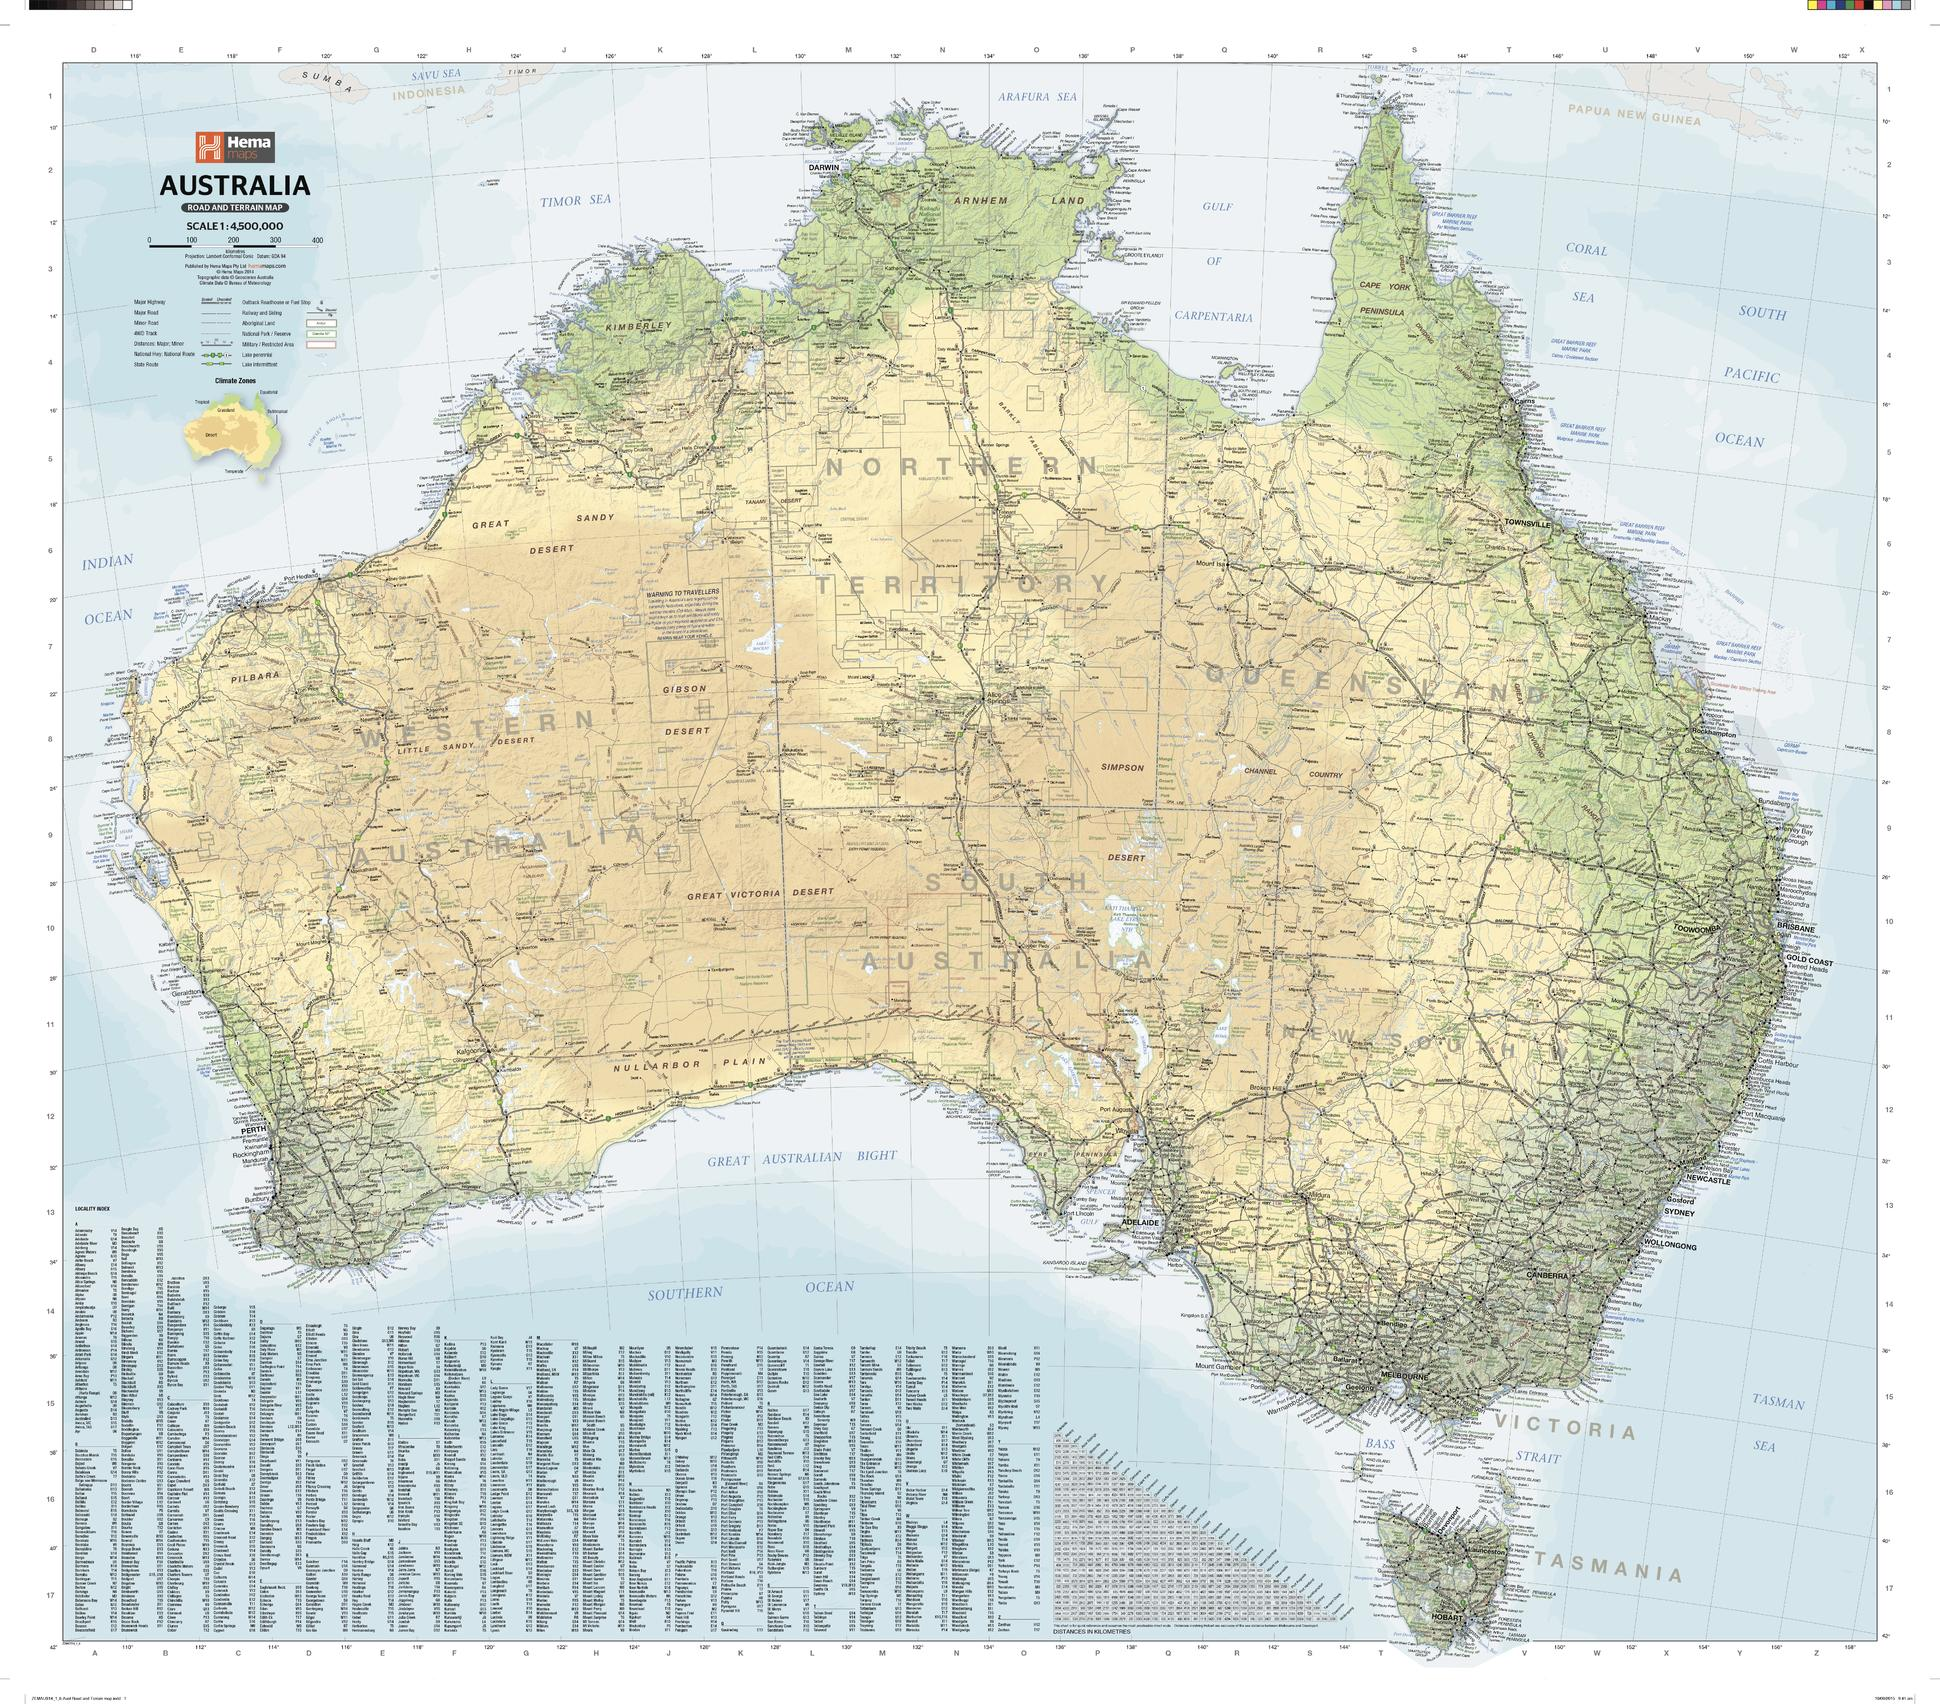 Australia Road & Terrain Map